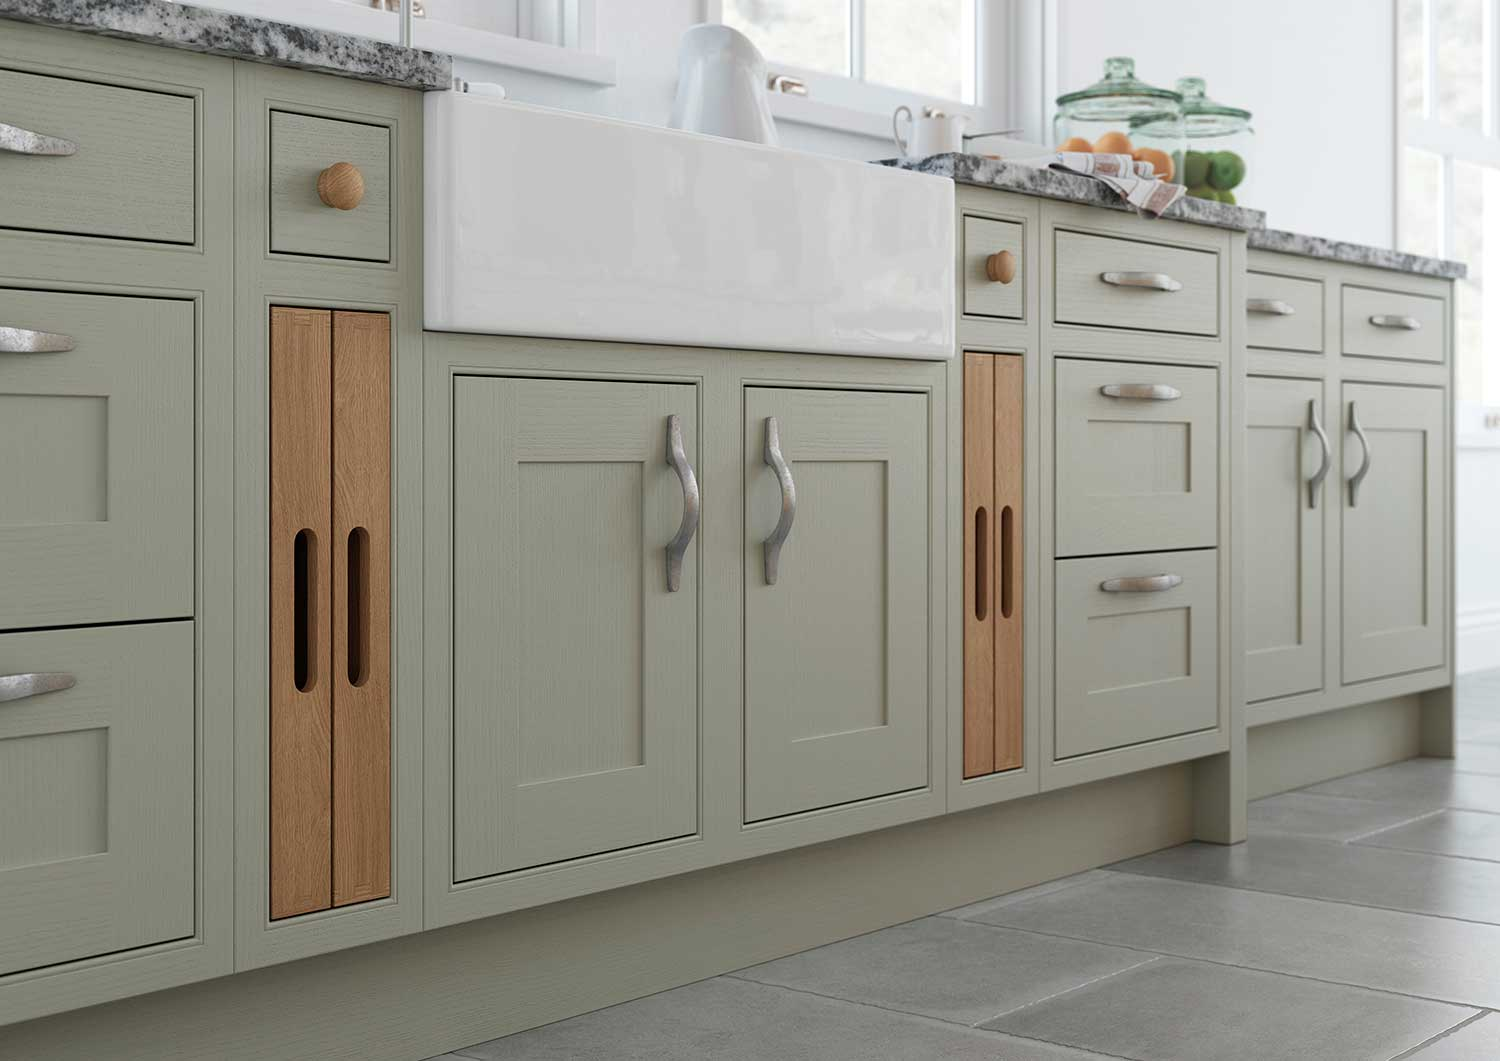 Classic shaker kitchen with Belfast Sink